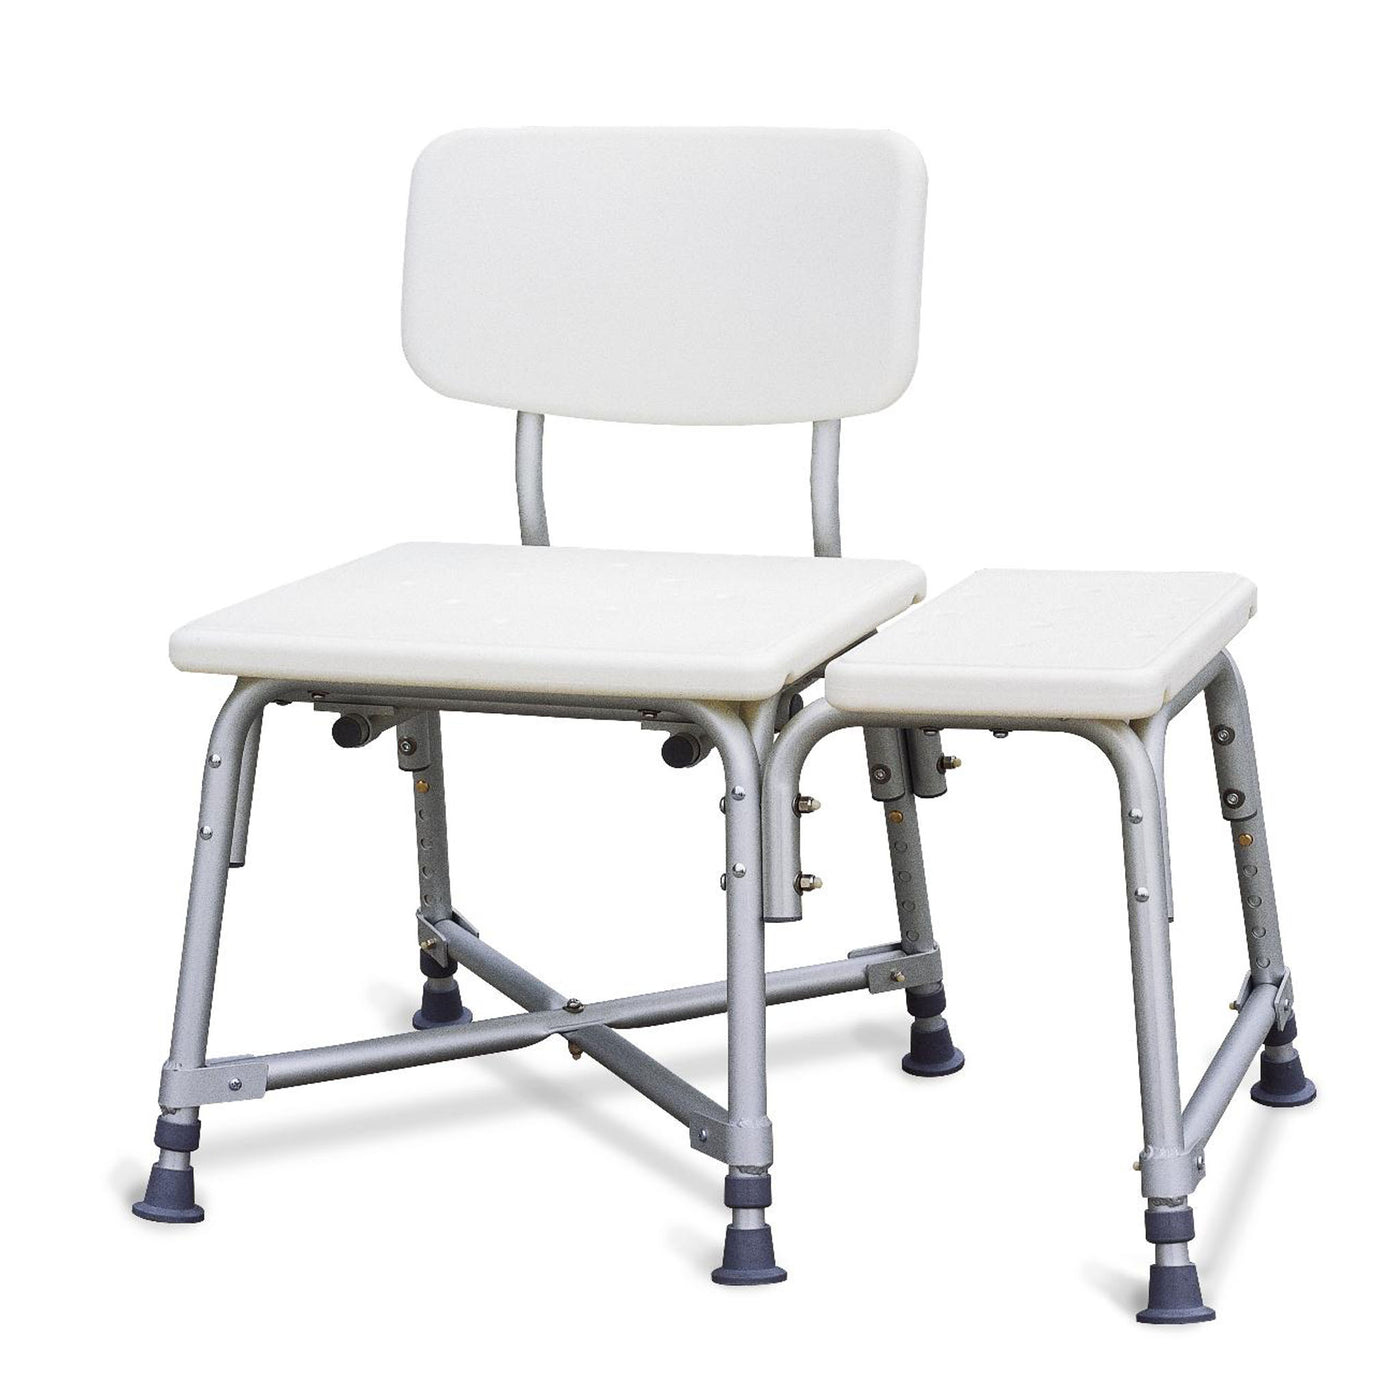 Astounding Medline Guardian Bariatric Transfer Bench At Meridian Gmtry Best Dining Table And Chair Ideas Images Gmtryco